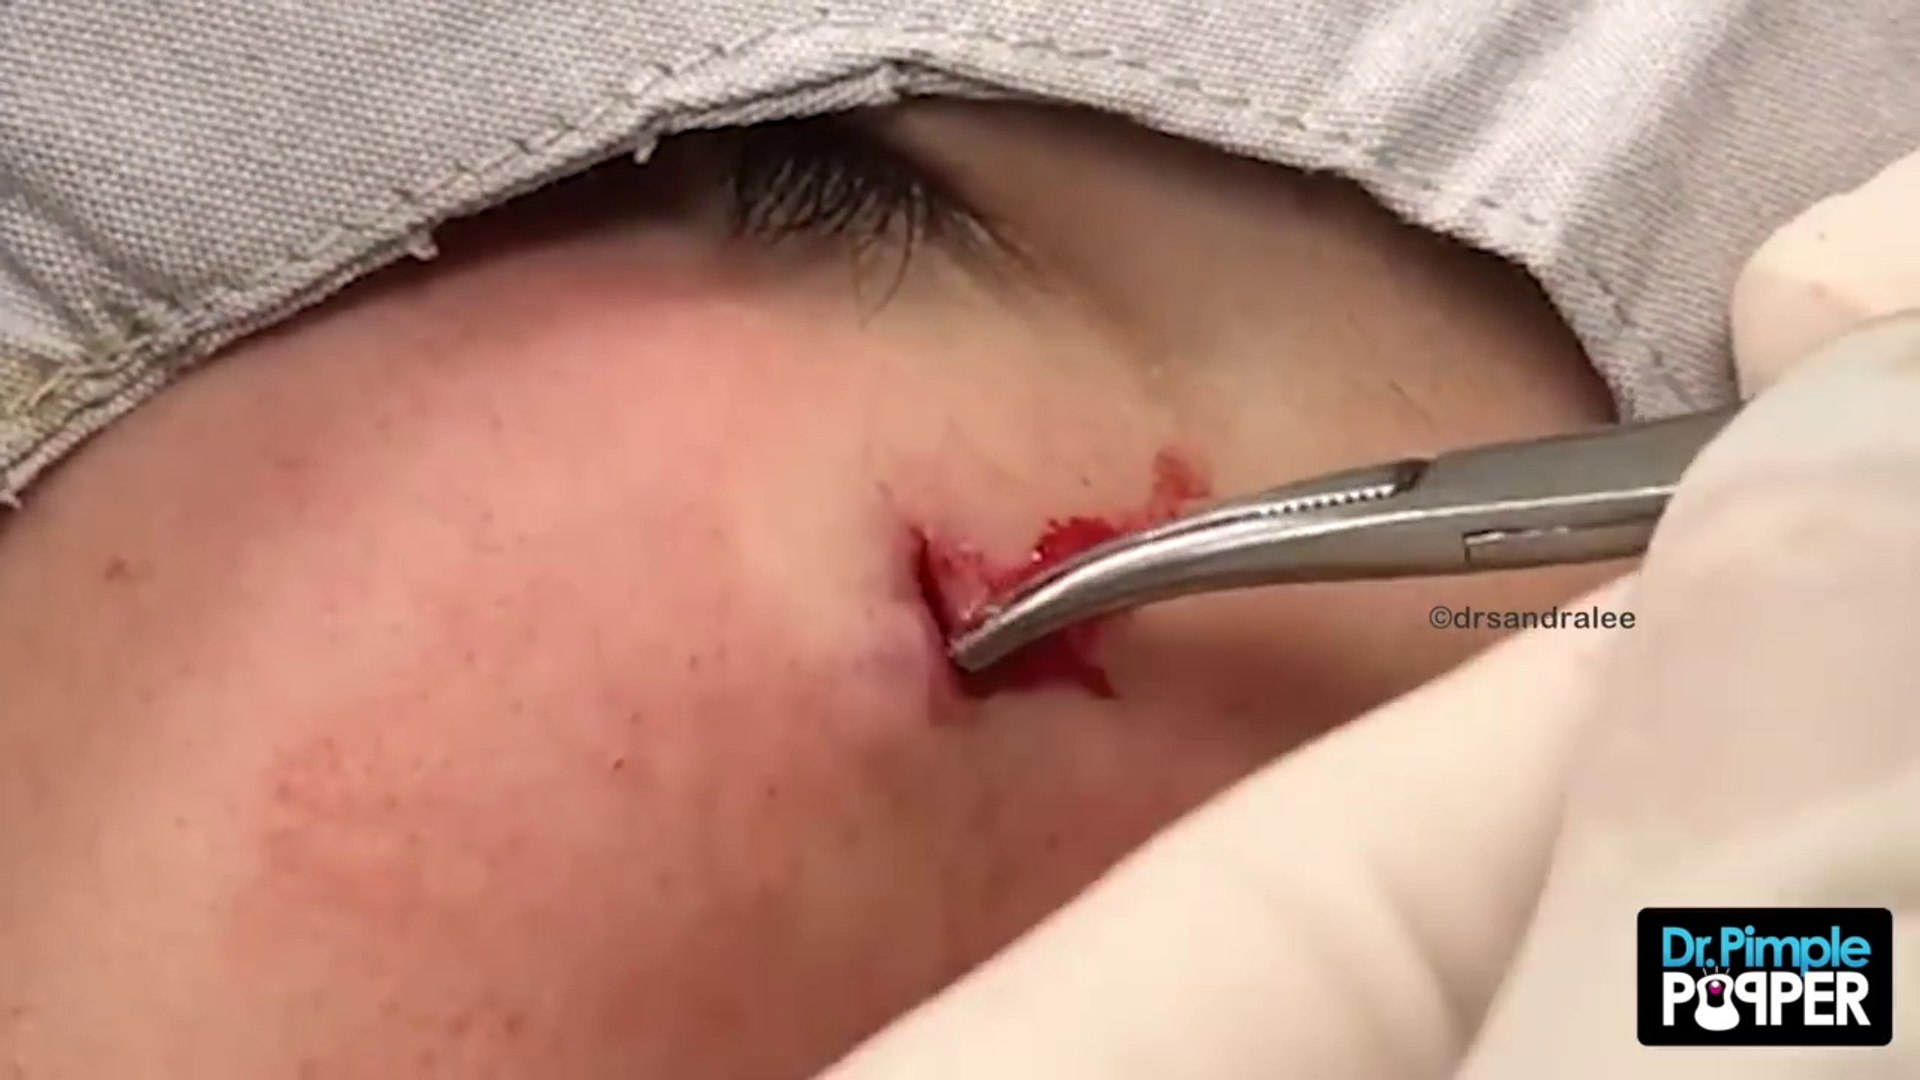 The Cyst that GOT Dr Pimple Popper!